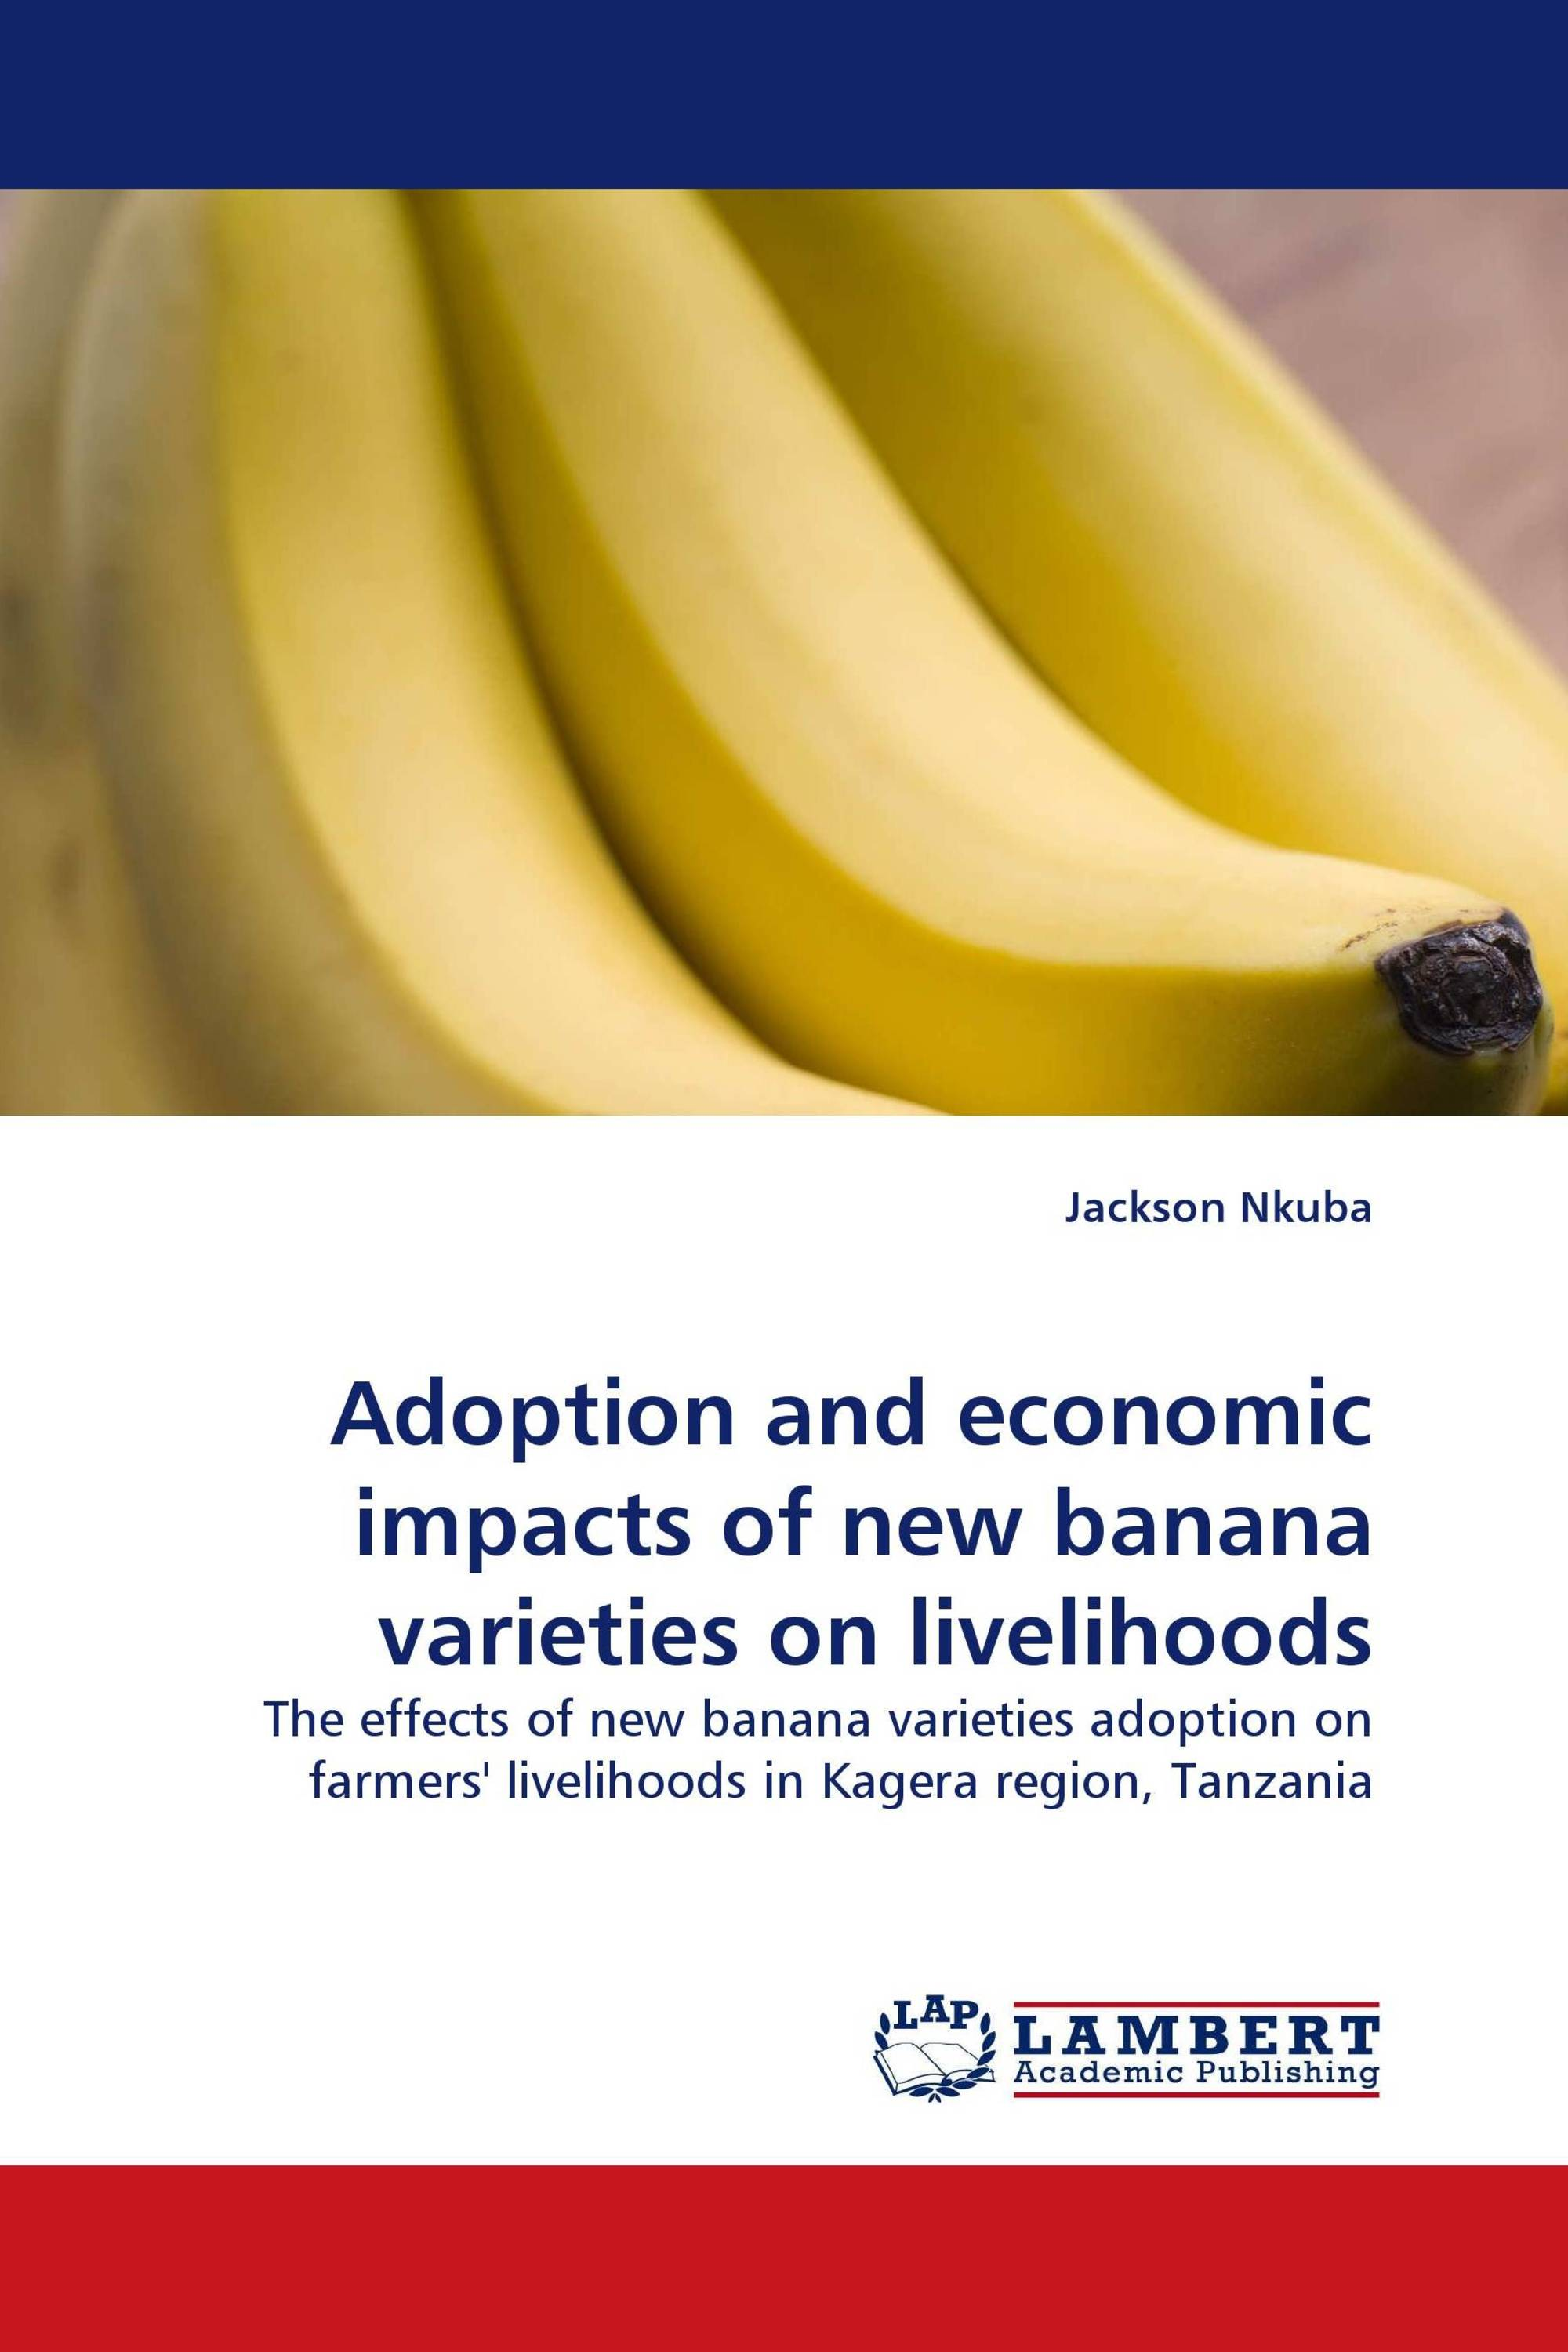 Adoption and economic impacts of new banana varieties on livelihoods